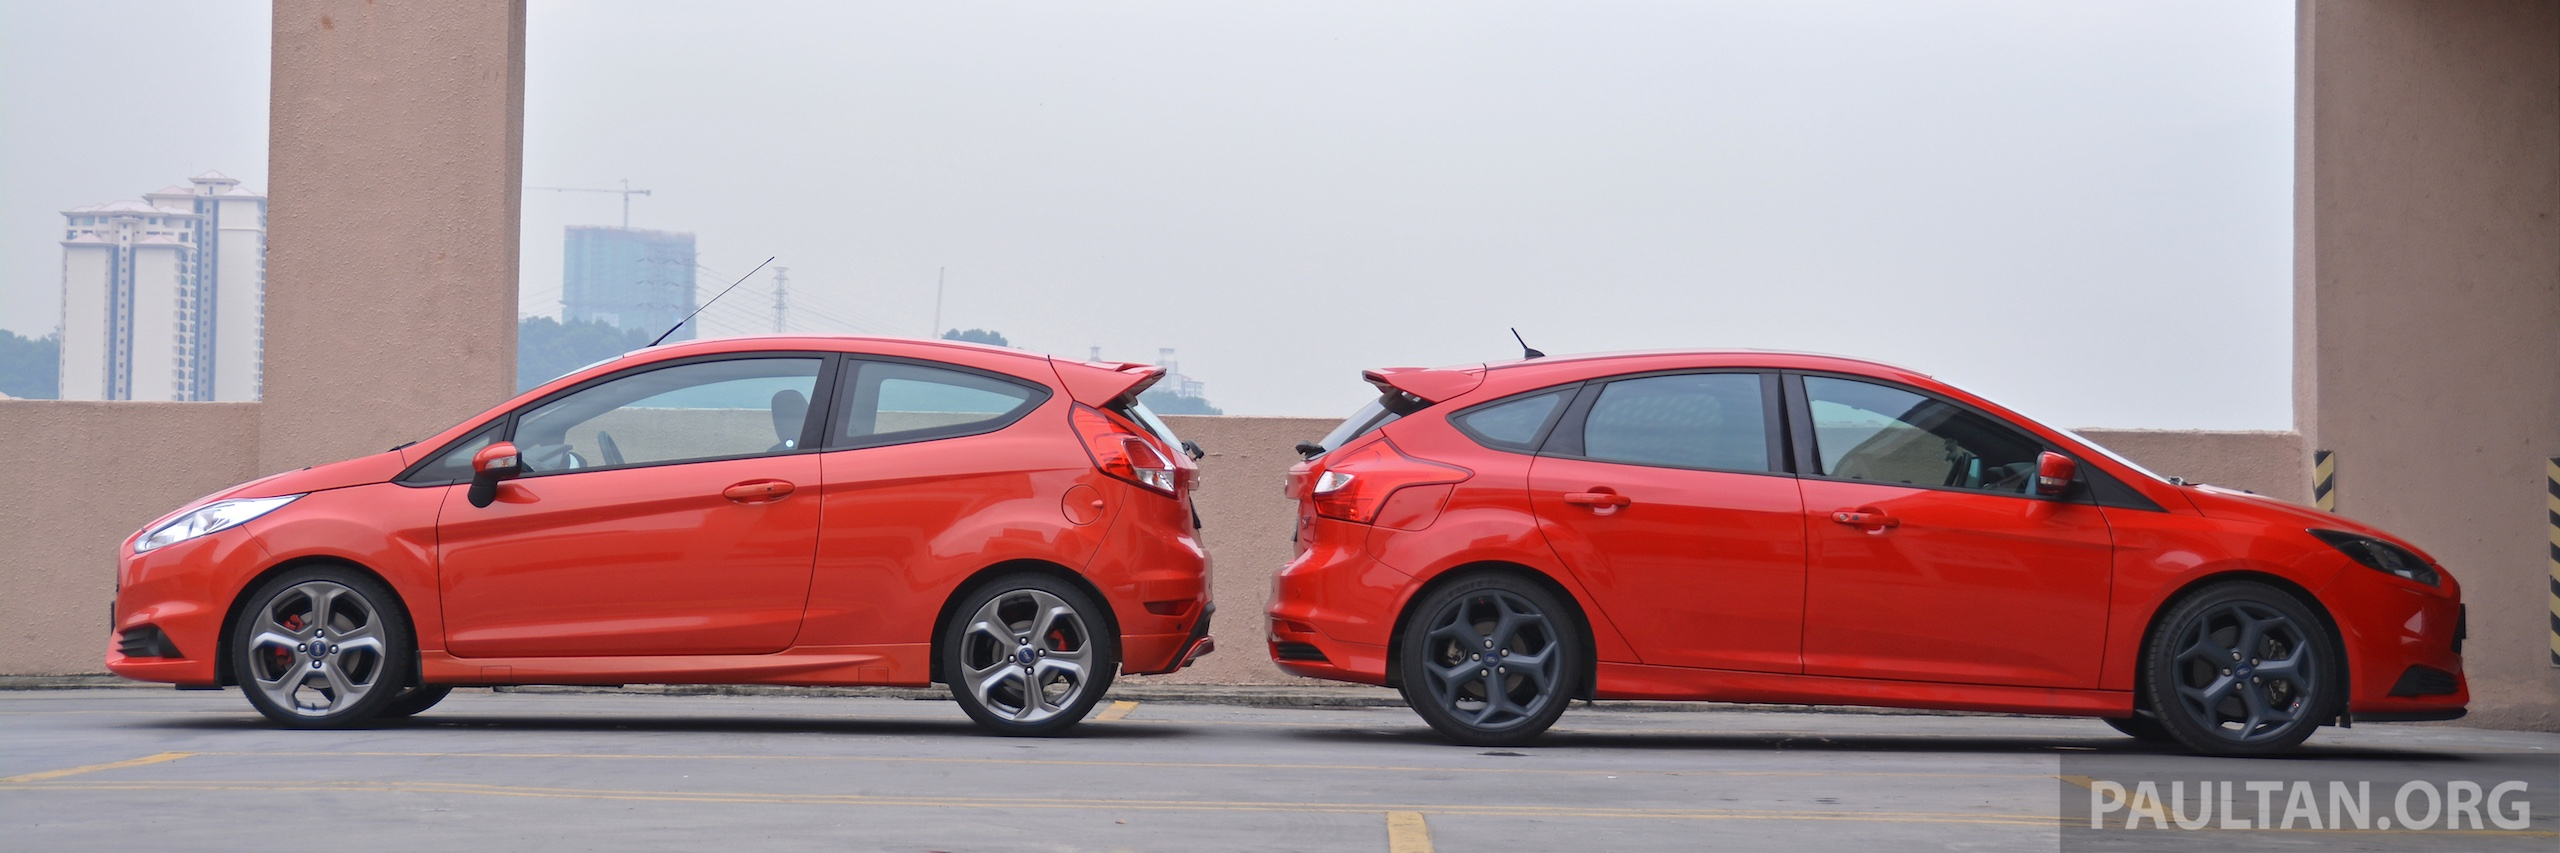 GALLERY: Ford Fiesta ST and Focus ST compared Paul Tan - Image 298414